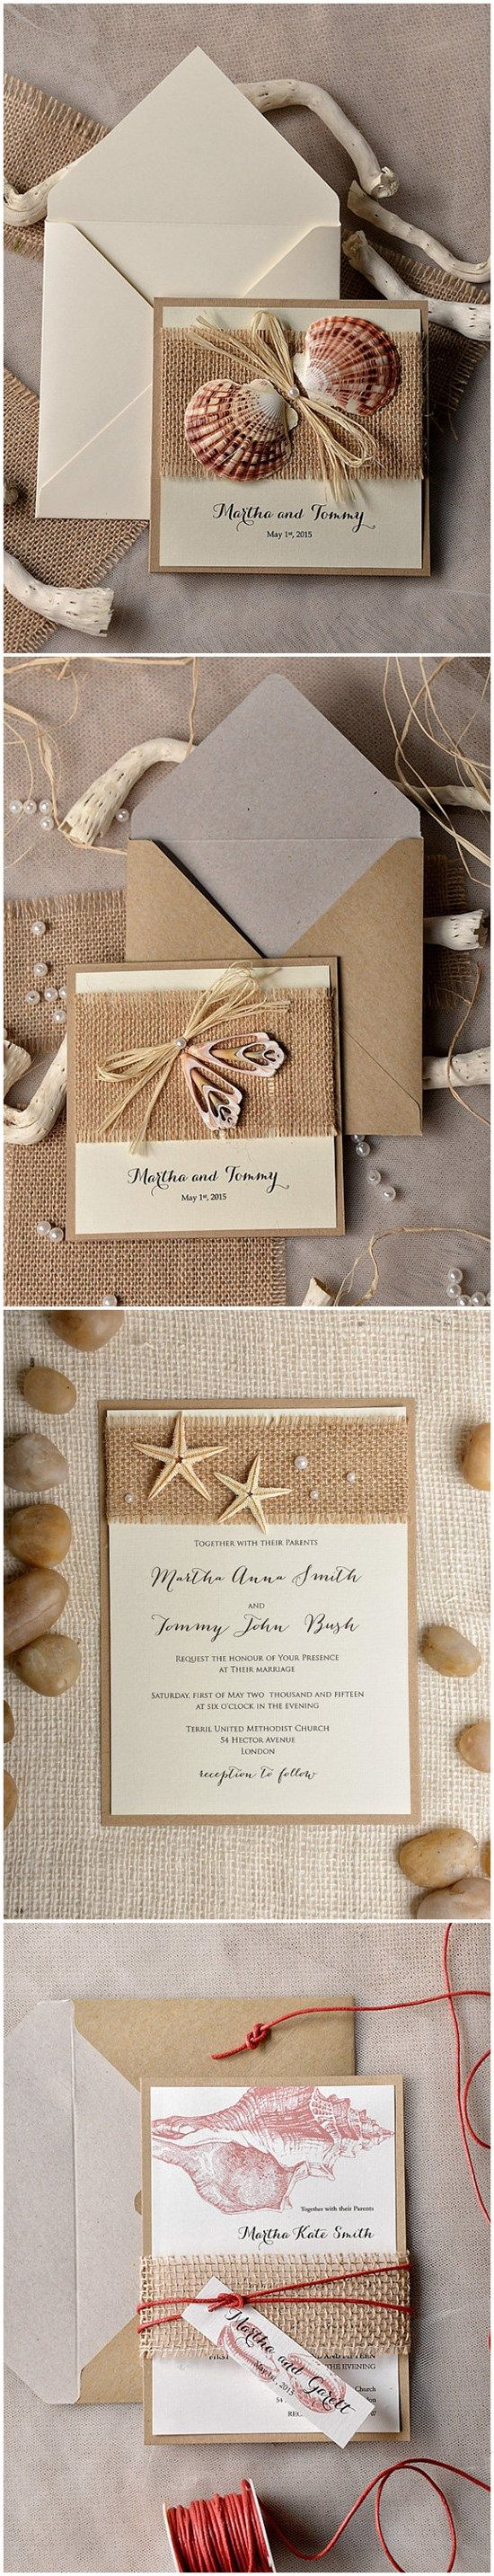 Best 25+ Rustic beach weddings ideas on Pinterest | Beach wedding ...